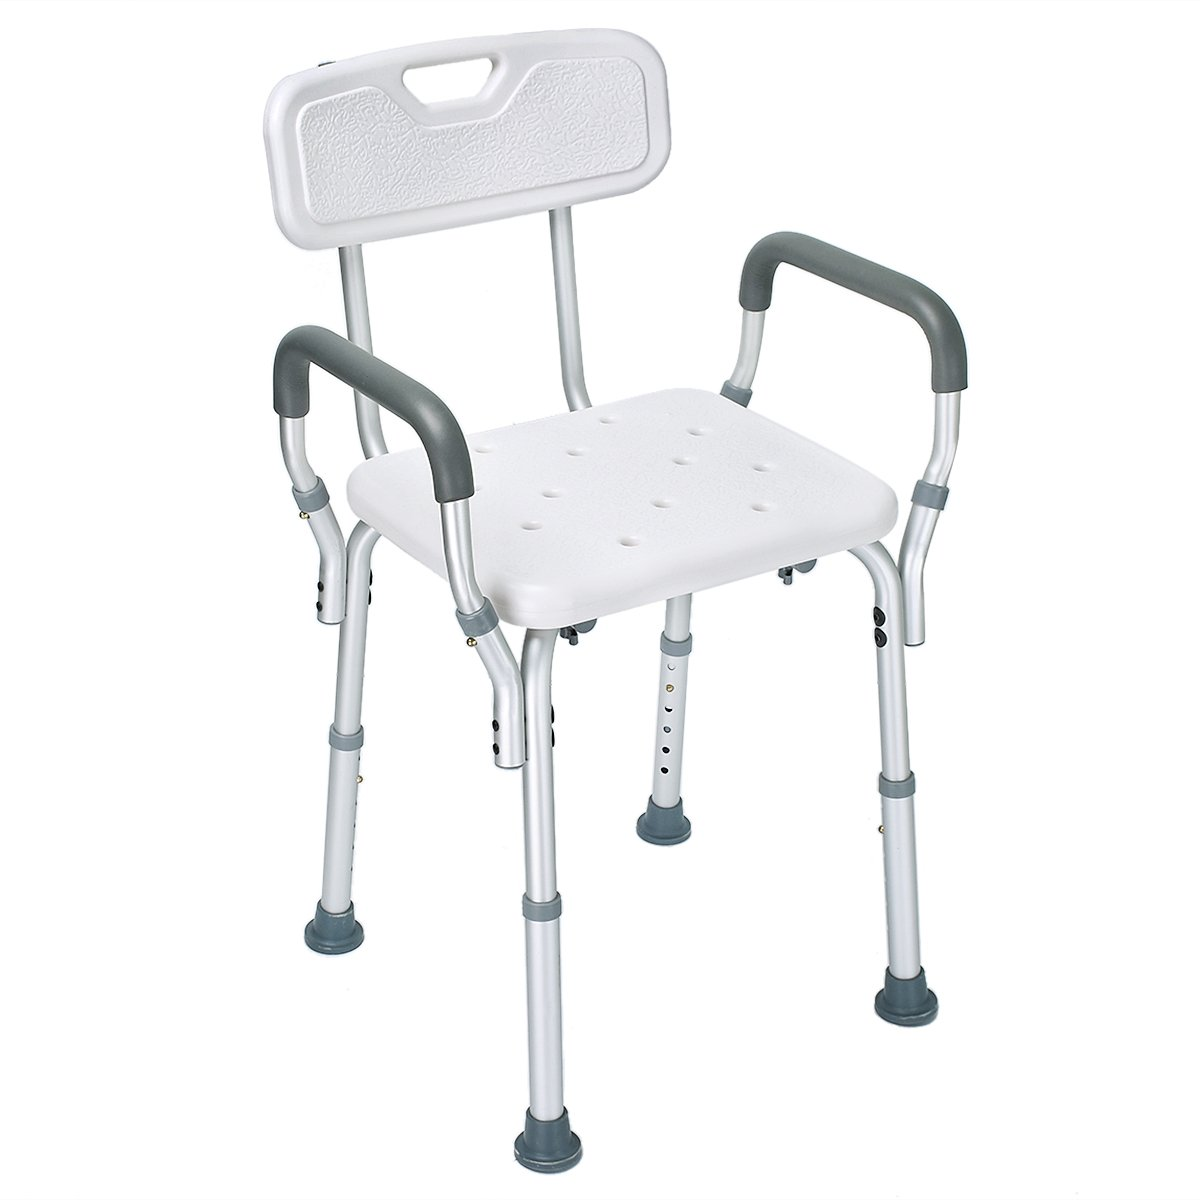 Healthline Bath Shower Chair Bench Stool Adjustable Height with Removable Back and Arms